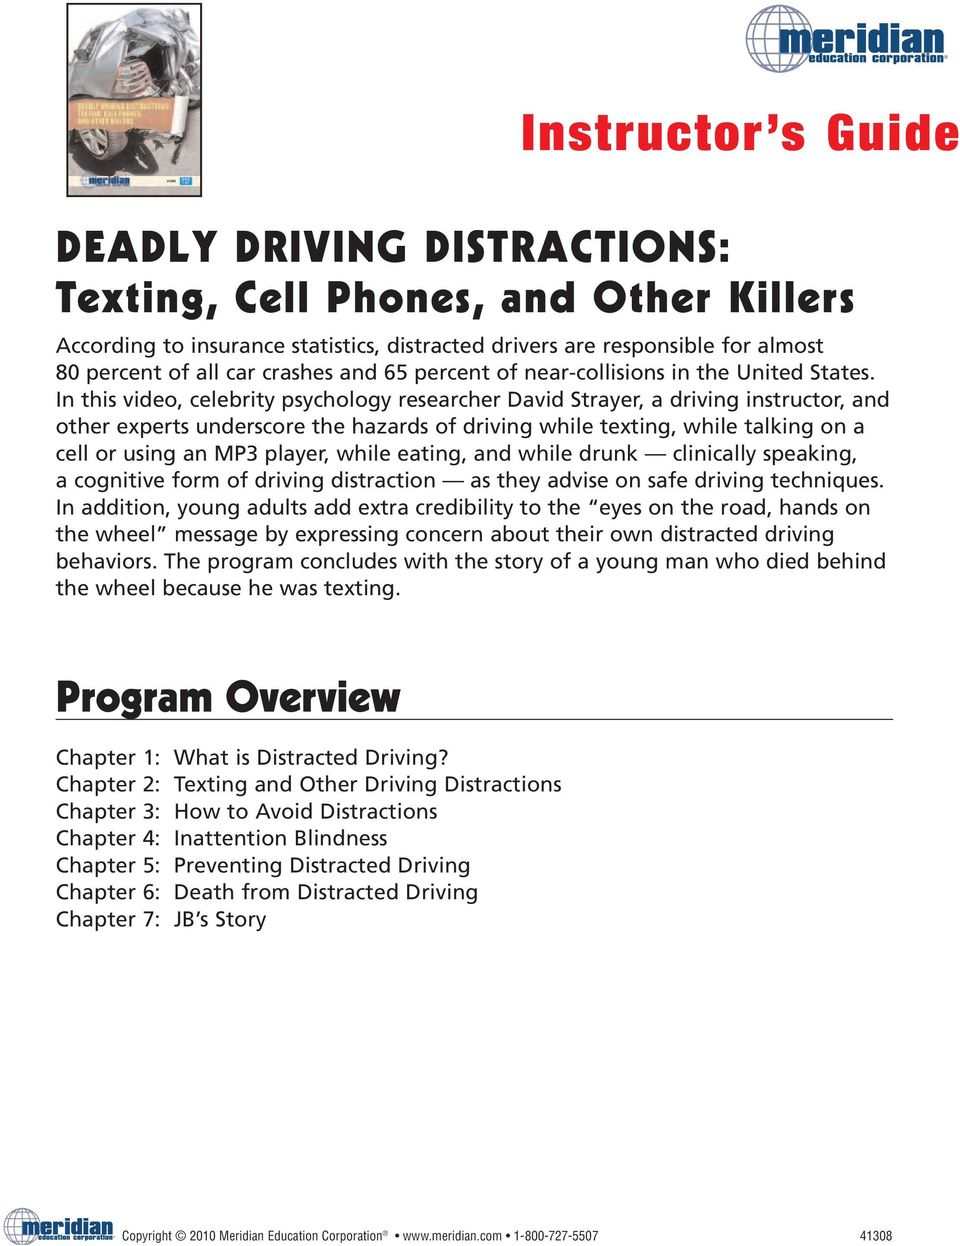 In this video, celebrity psychology researcher David Strayer, a driving instructor, and other experts underscore the hazards of driving while texting, while talking on a cell or using an MP3 player,